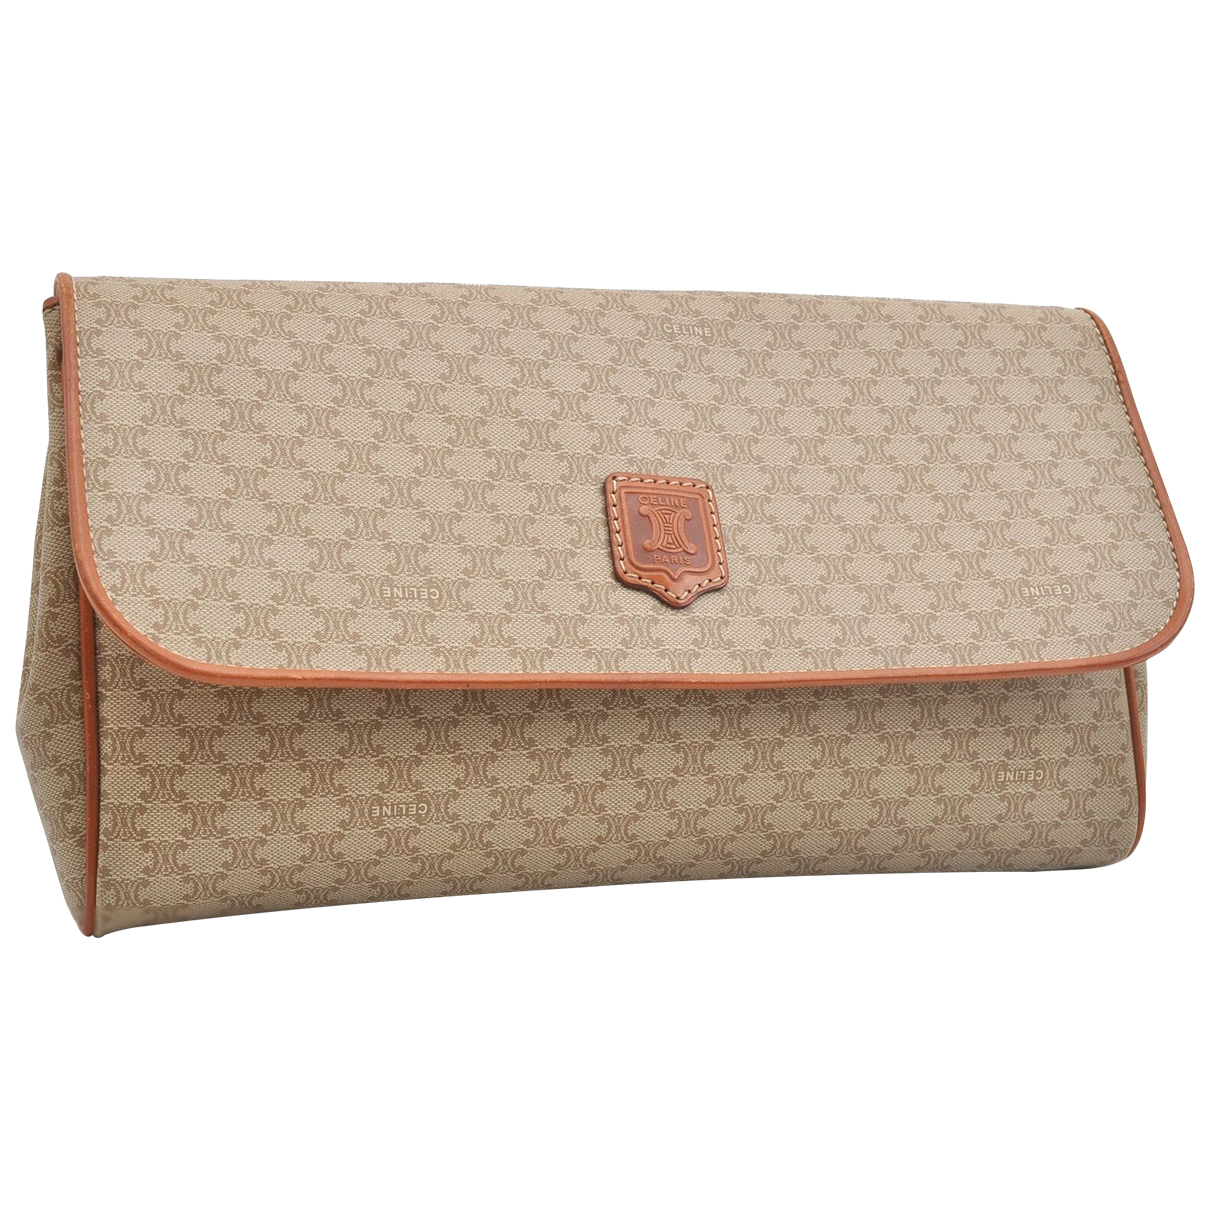 Celine N Beige Leather Clutch bag for Women N